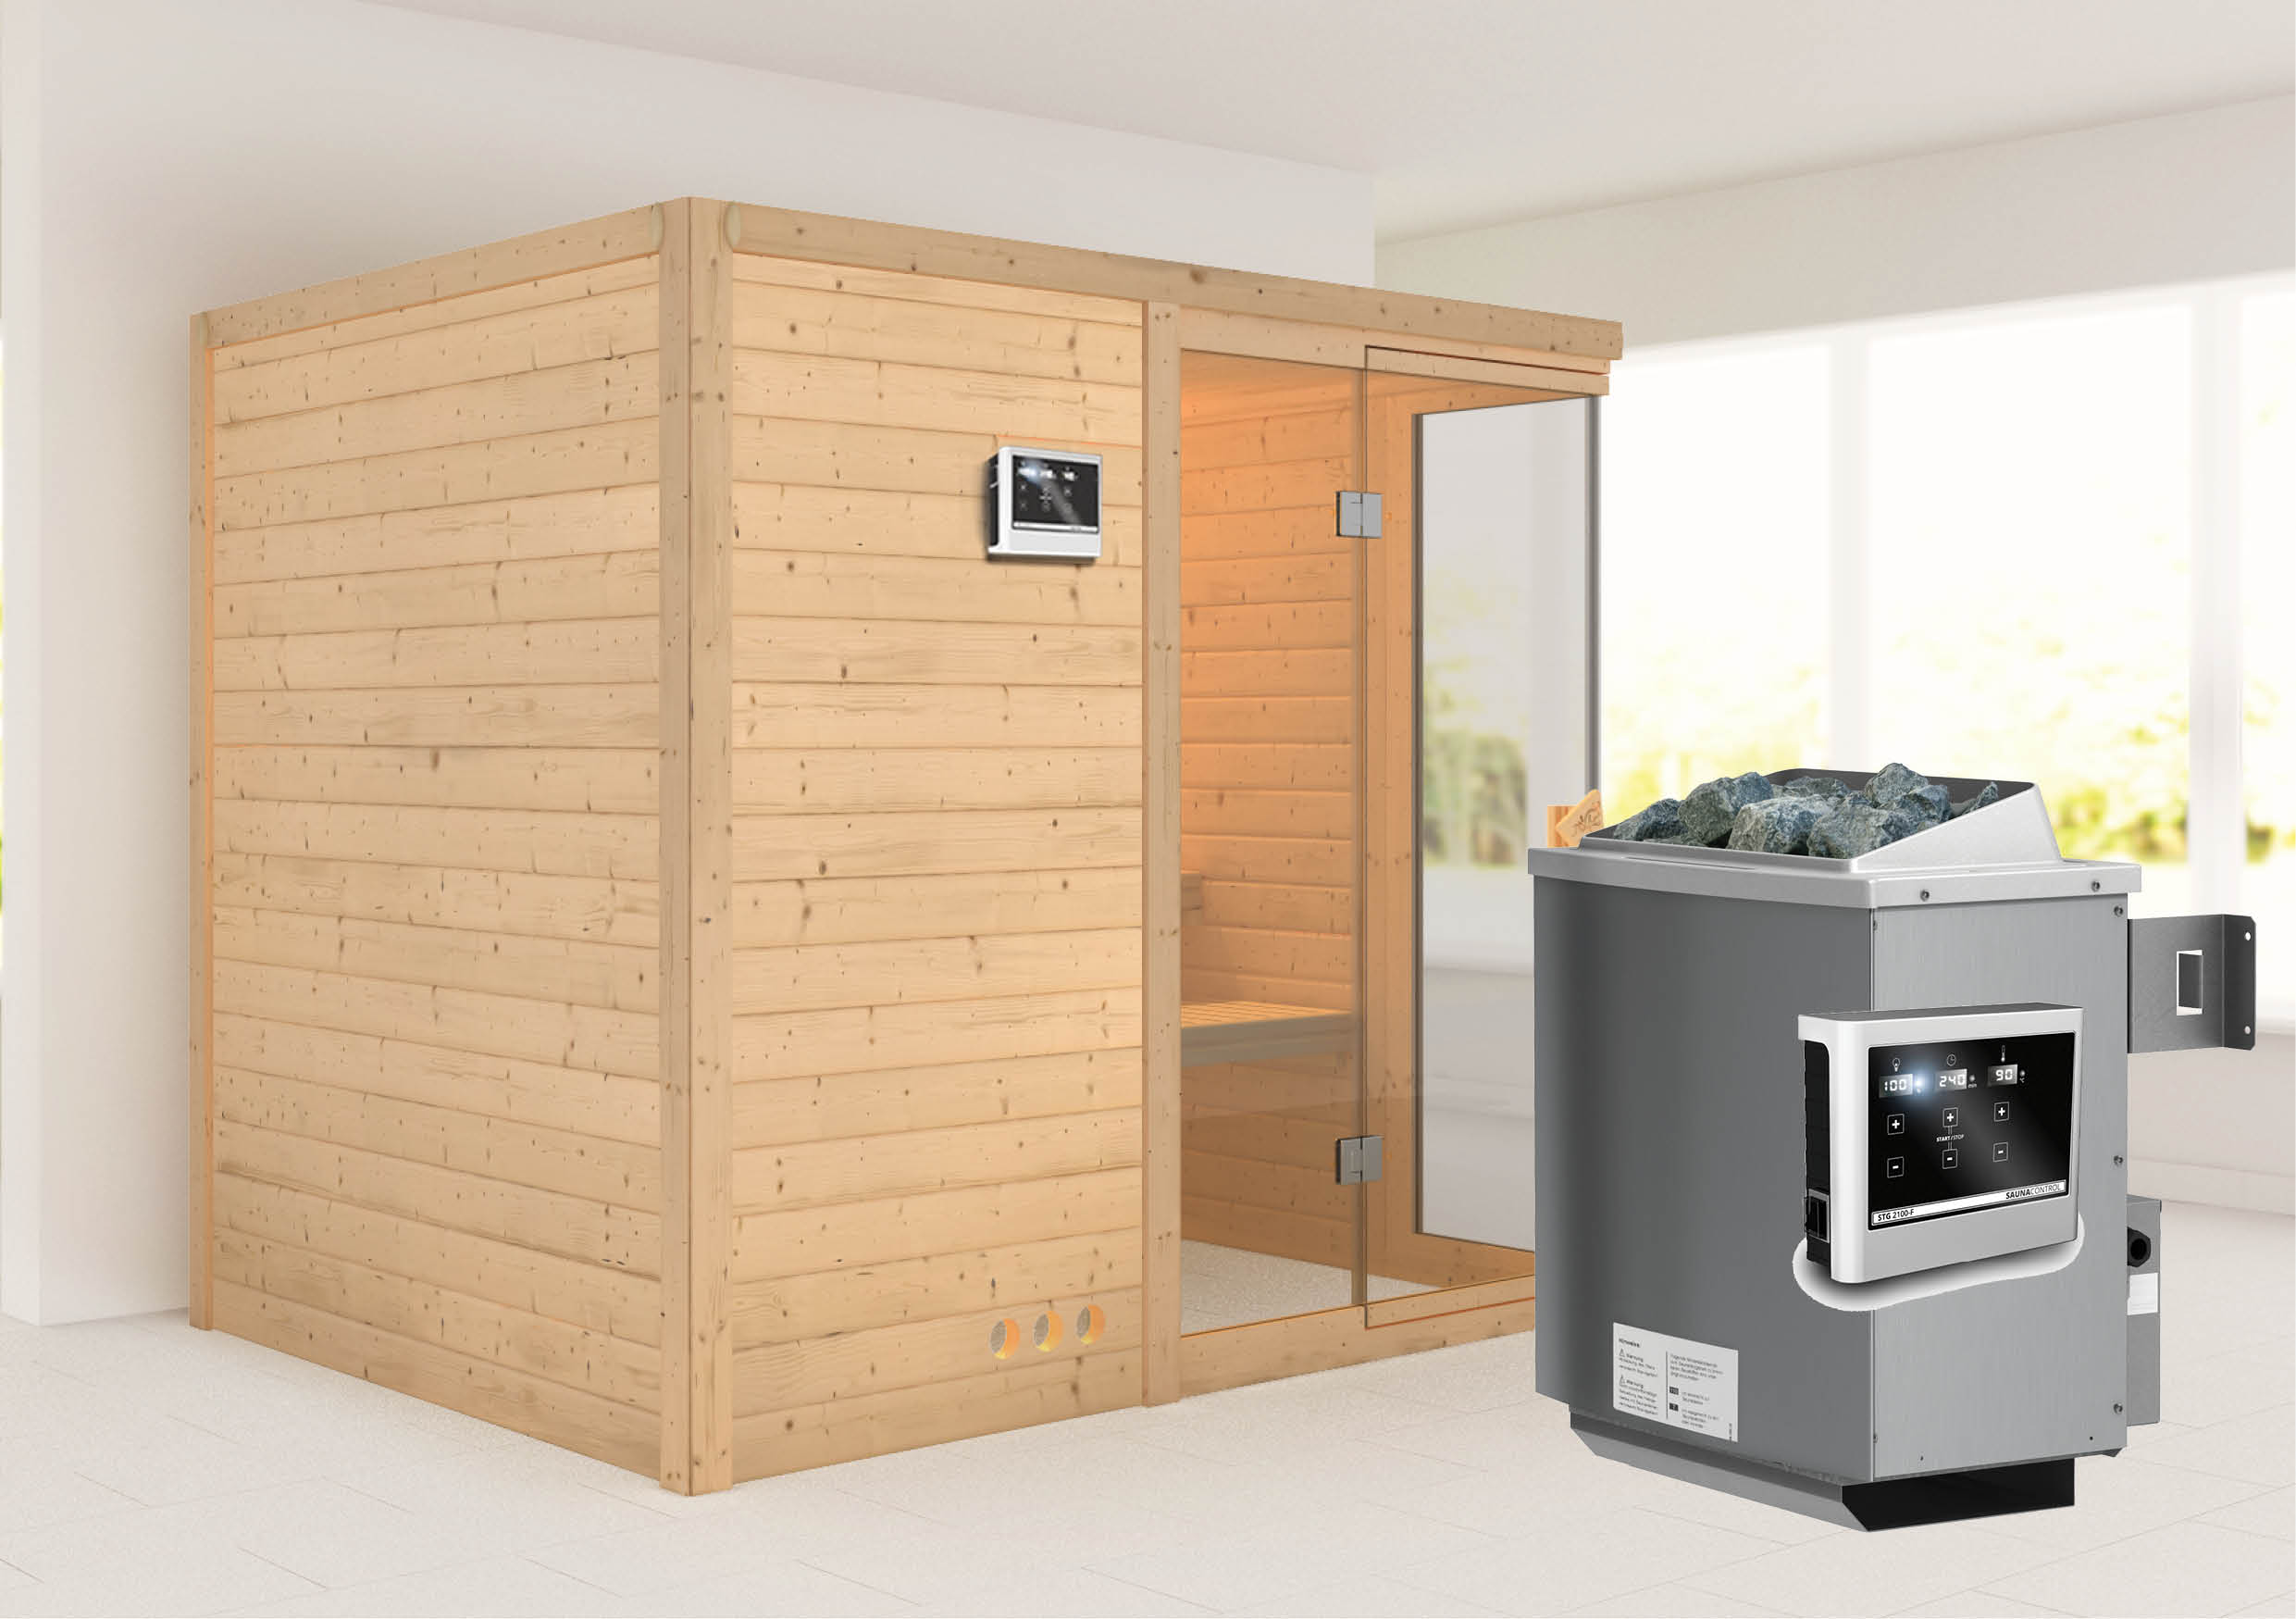 karibu massivholzsauna platina 3 2 36 x 1 84 m 40 mm mit 9 kw ofen sauna ebay. Black Bedroom Furniture Sets. Home Design Ideas